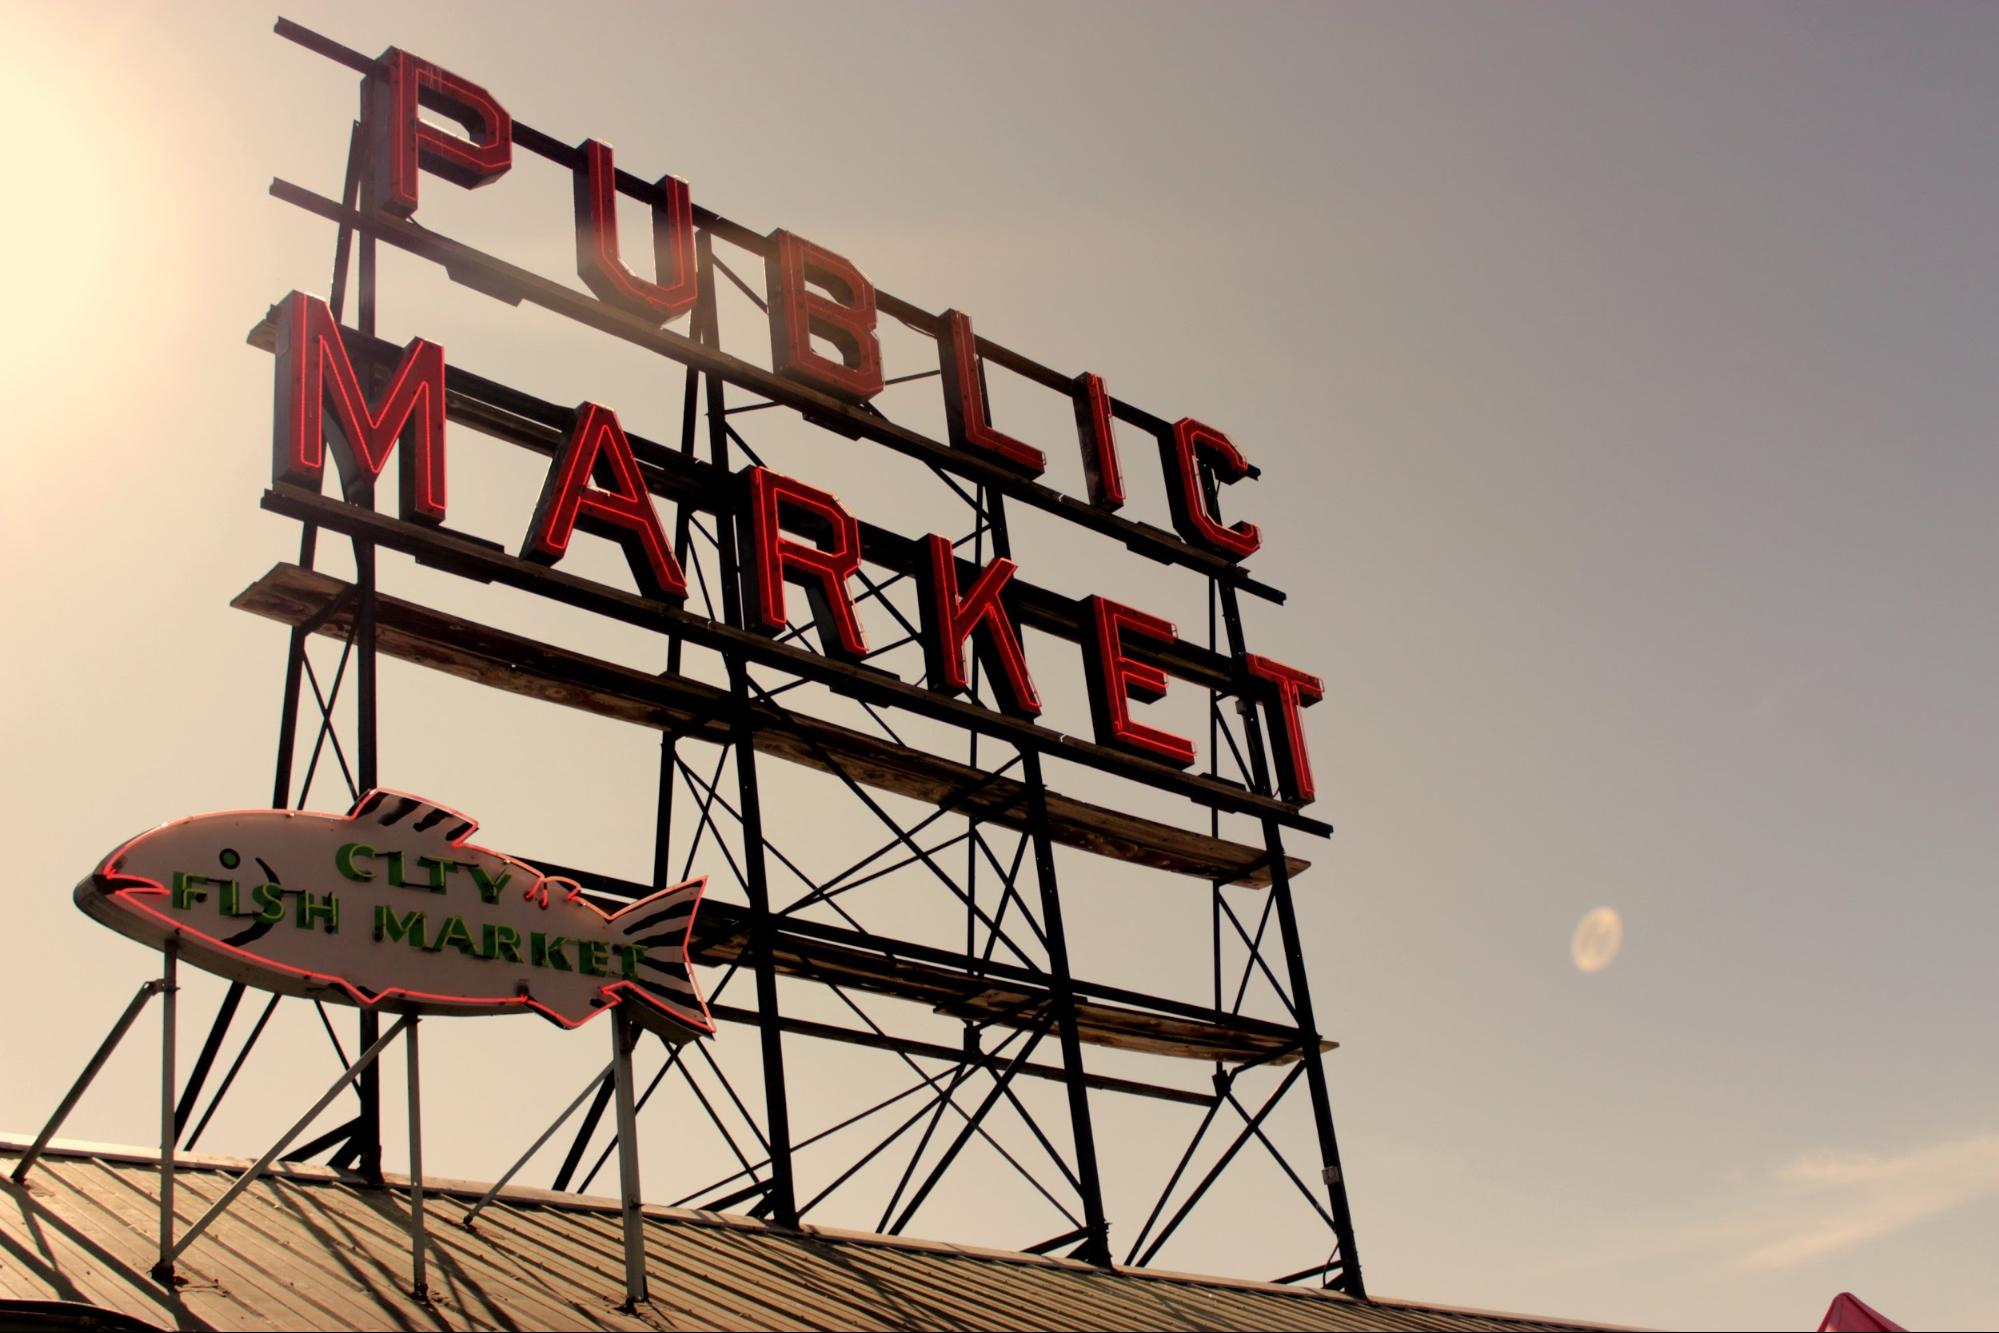 A picture of the Pike Place Market sign in Seattle